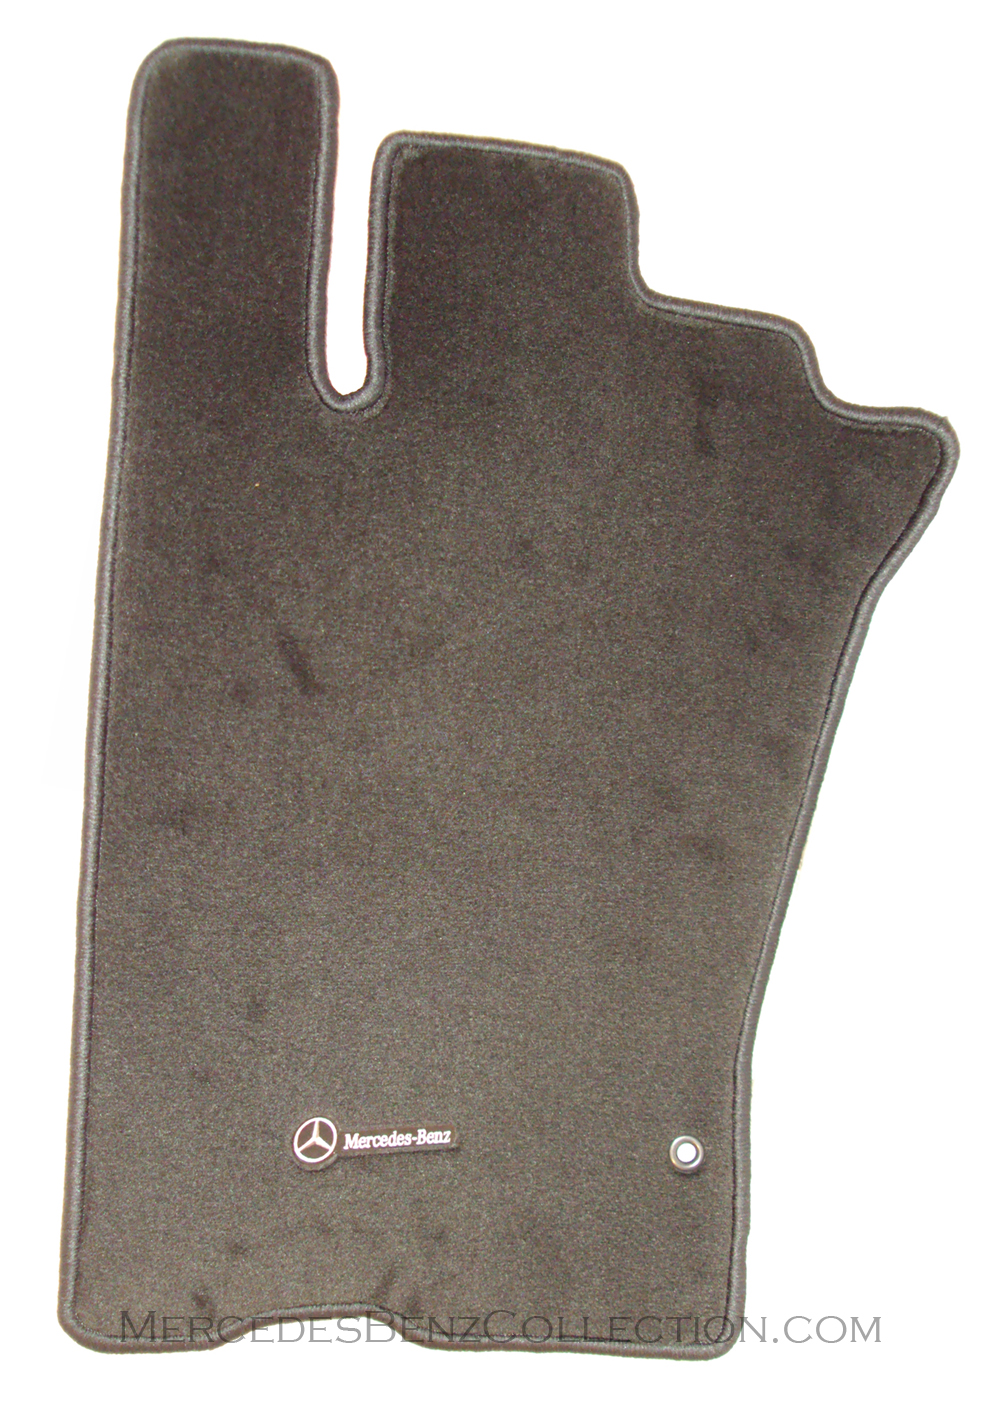 mercedes benz genuine carpeted floor mats m class 2000 to 2005 w163. Cars Review. Best American Auto & Cars Review